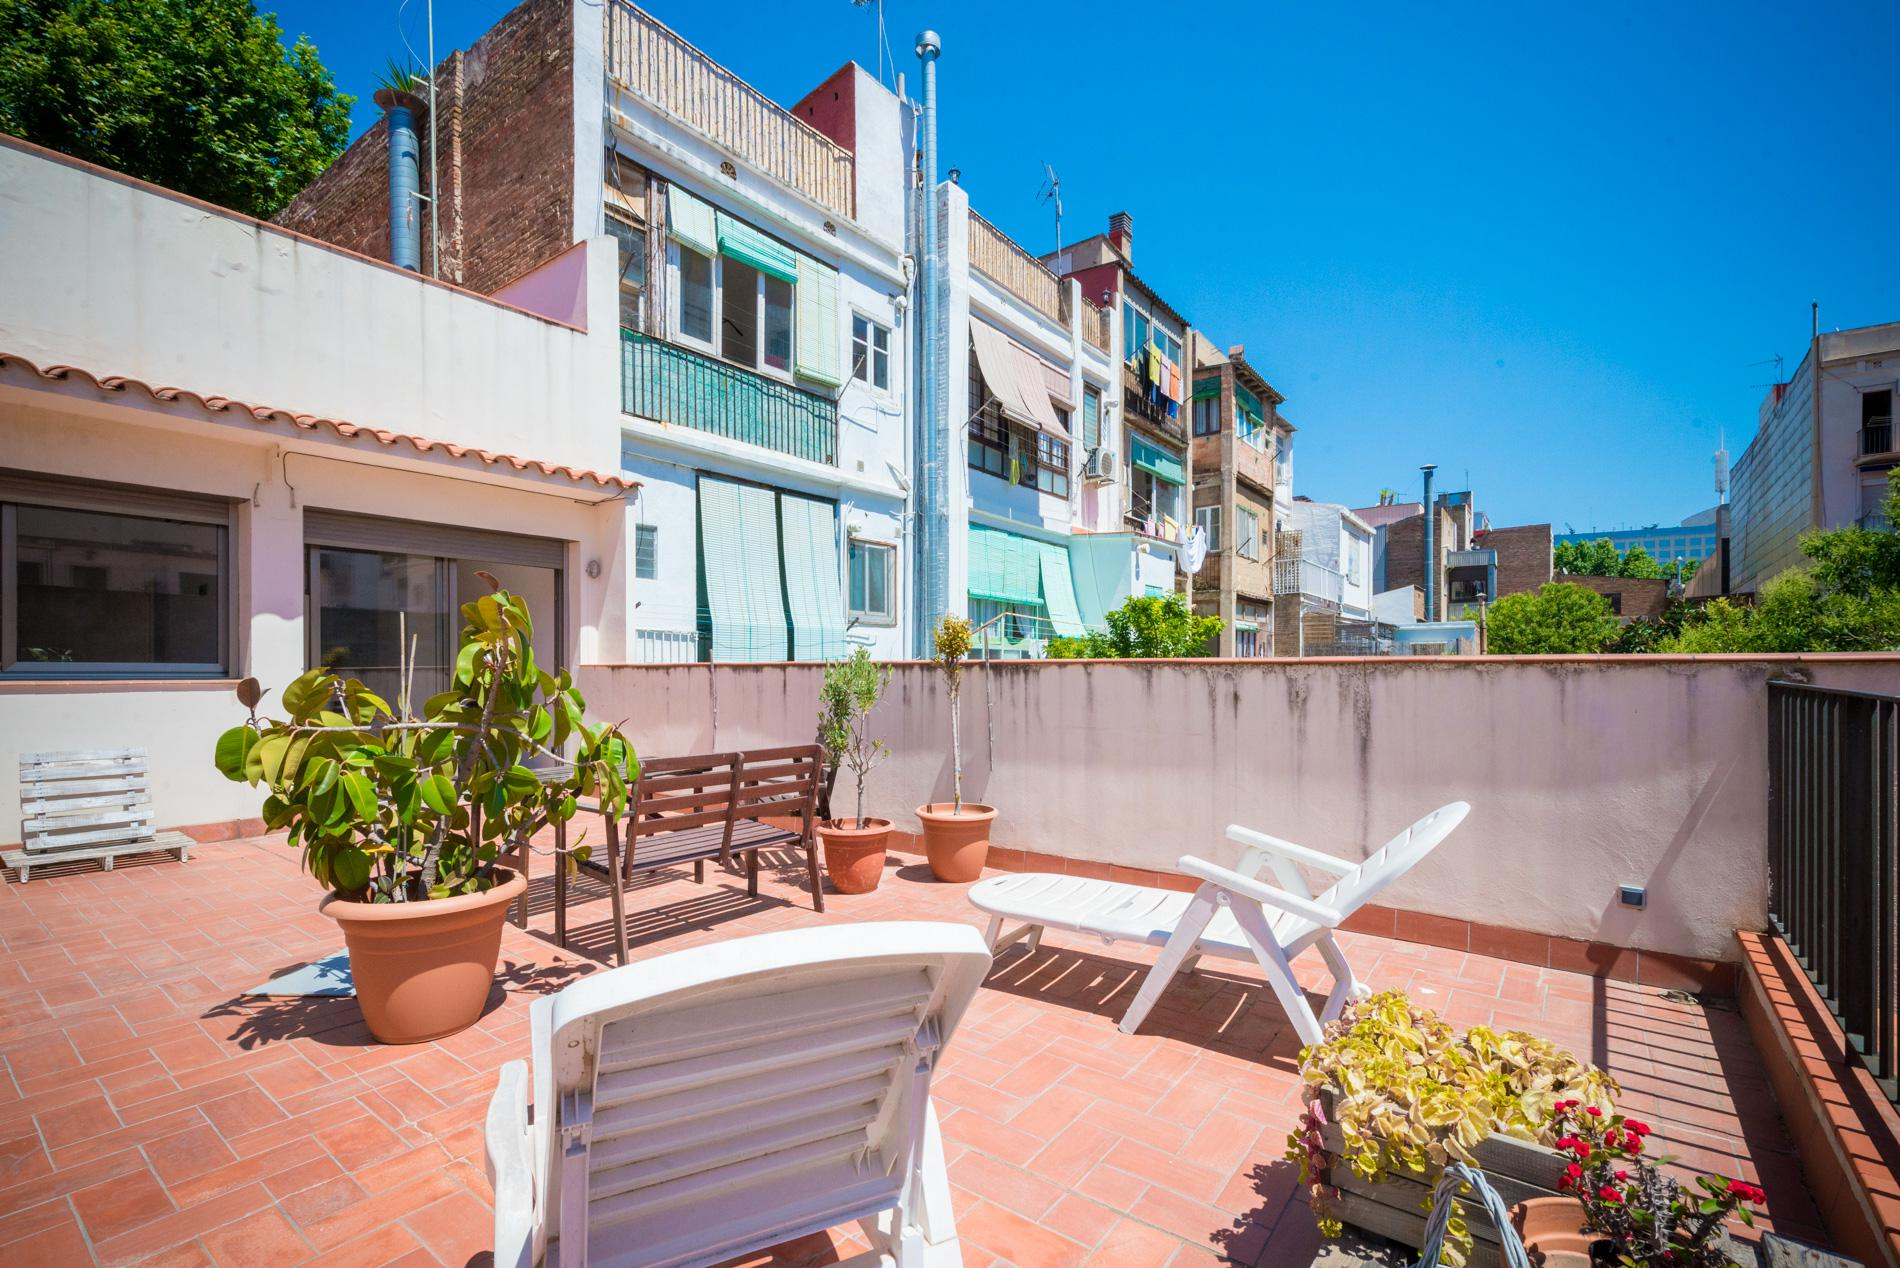 239277 Semi-detached house for sale in Sants-Montjuïc, Sants 5